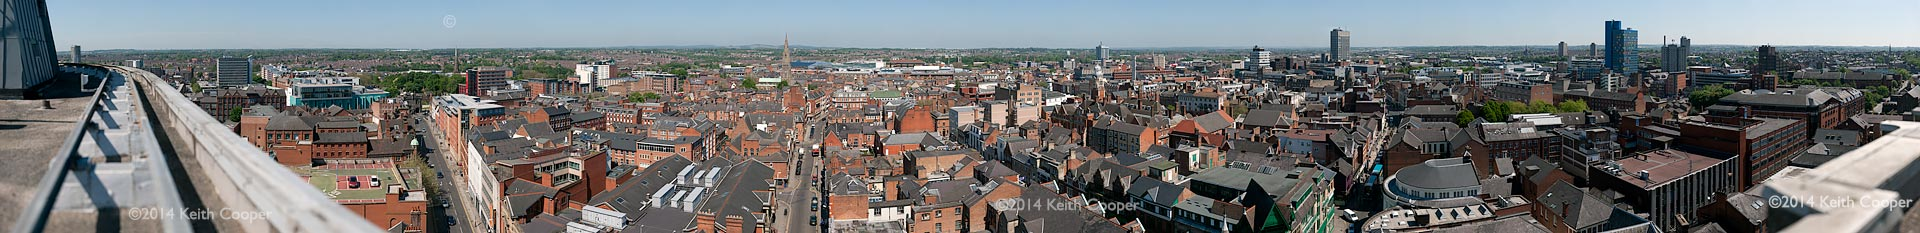 view of the city of Leicester from New walk centre 'A' block